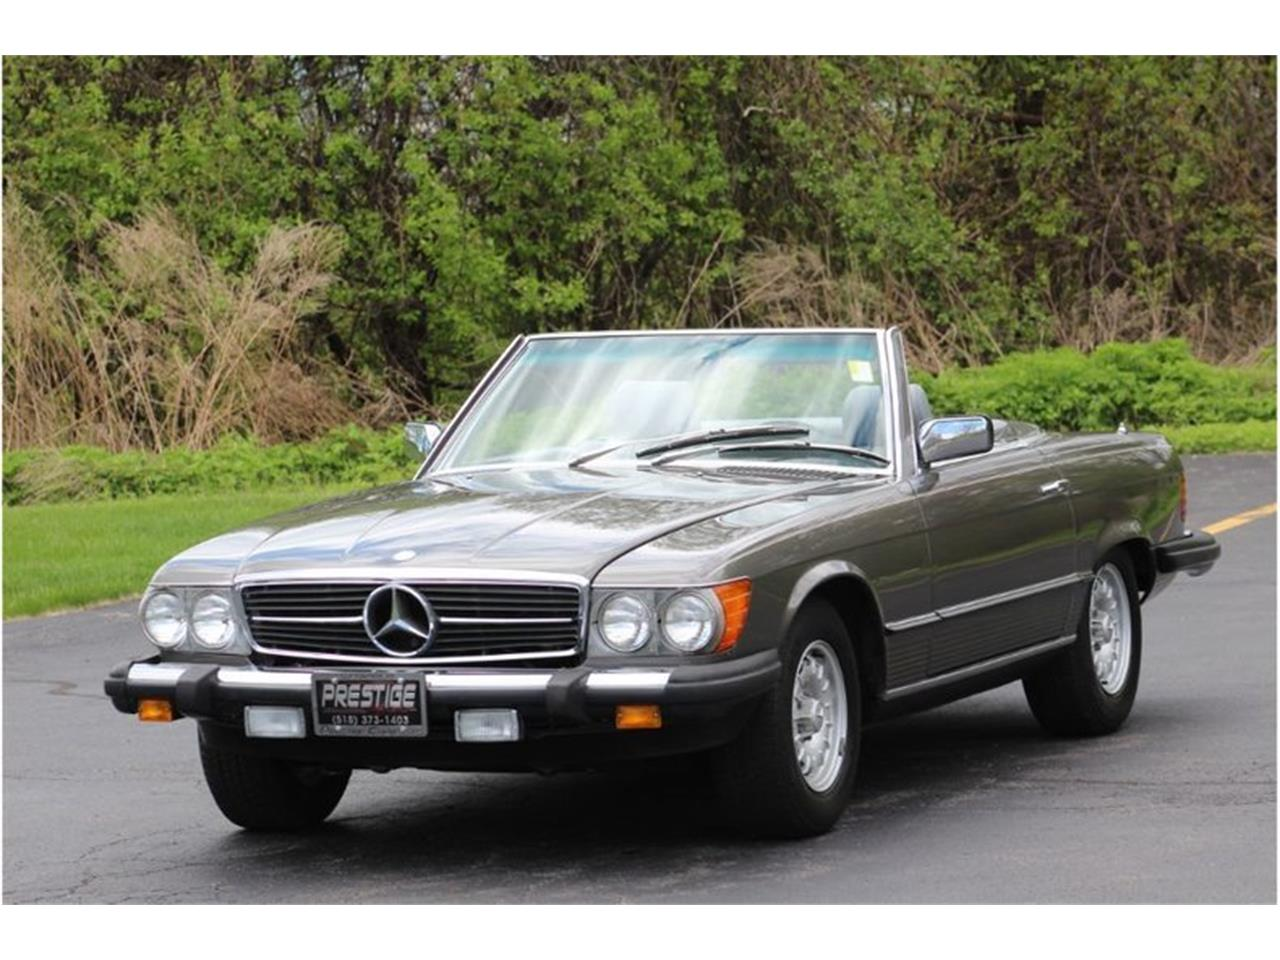 Large Picture of 1983 Mercedes-Benz 380SL located in New York Auction Vehicle Offered by Saratoga Auto Auction - R1AI